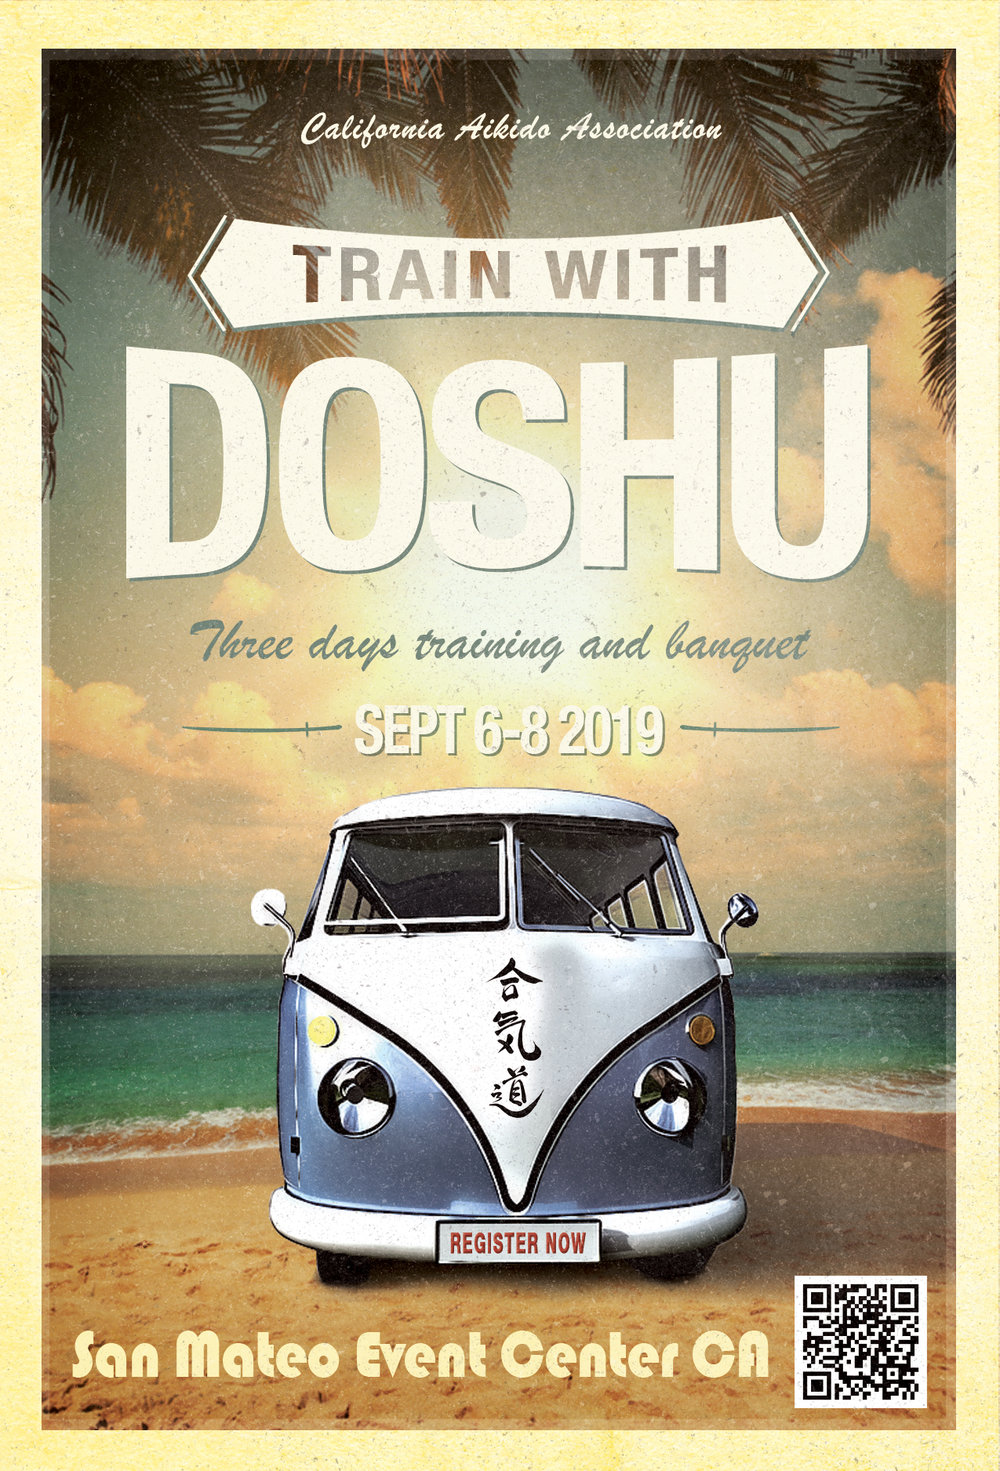 DOSHU FLYER 2019 FINAL.jpg